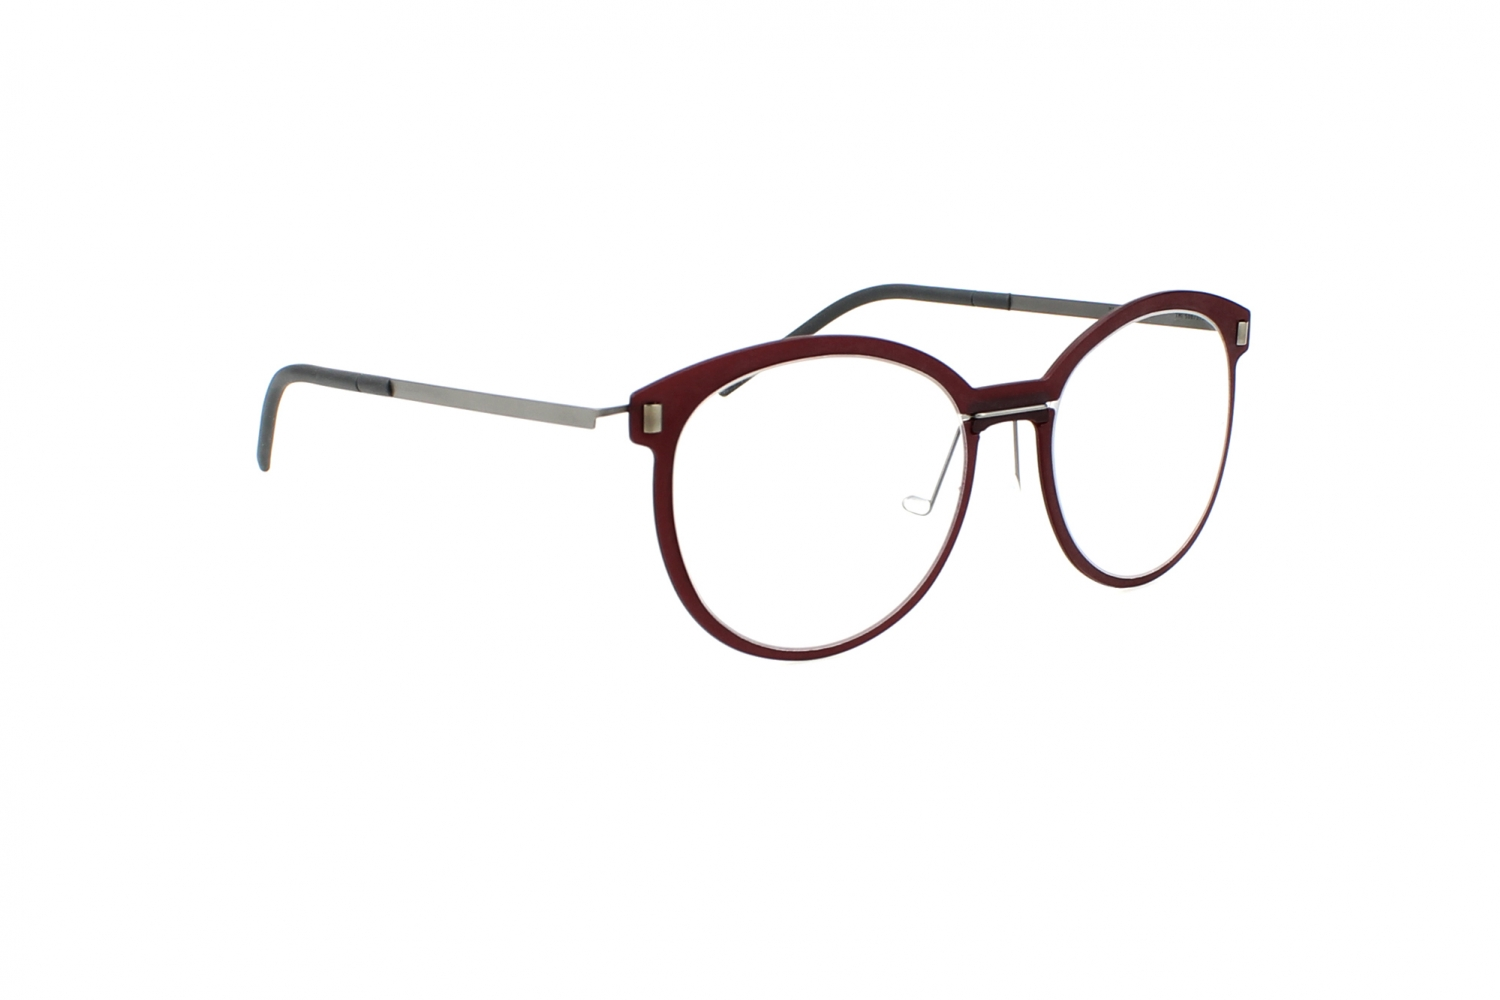 Markus T M1 070 508 335 red rXTM